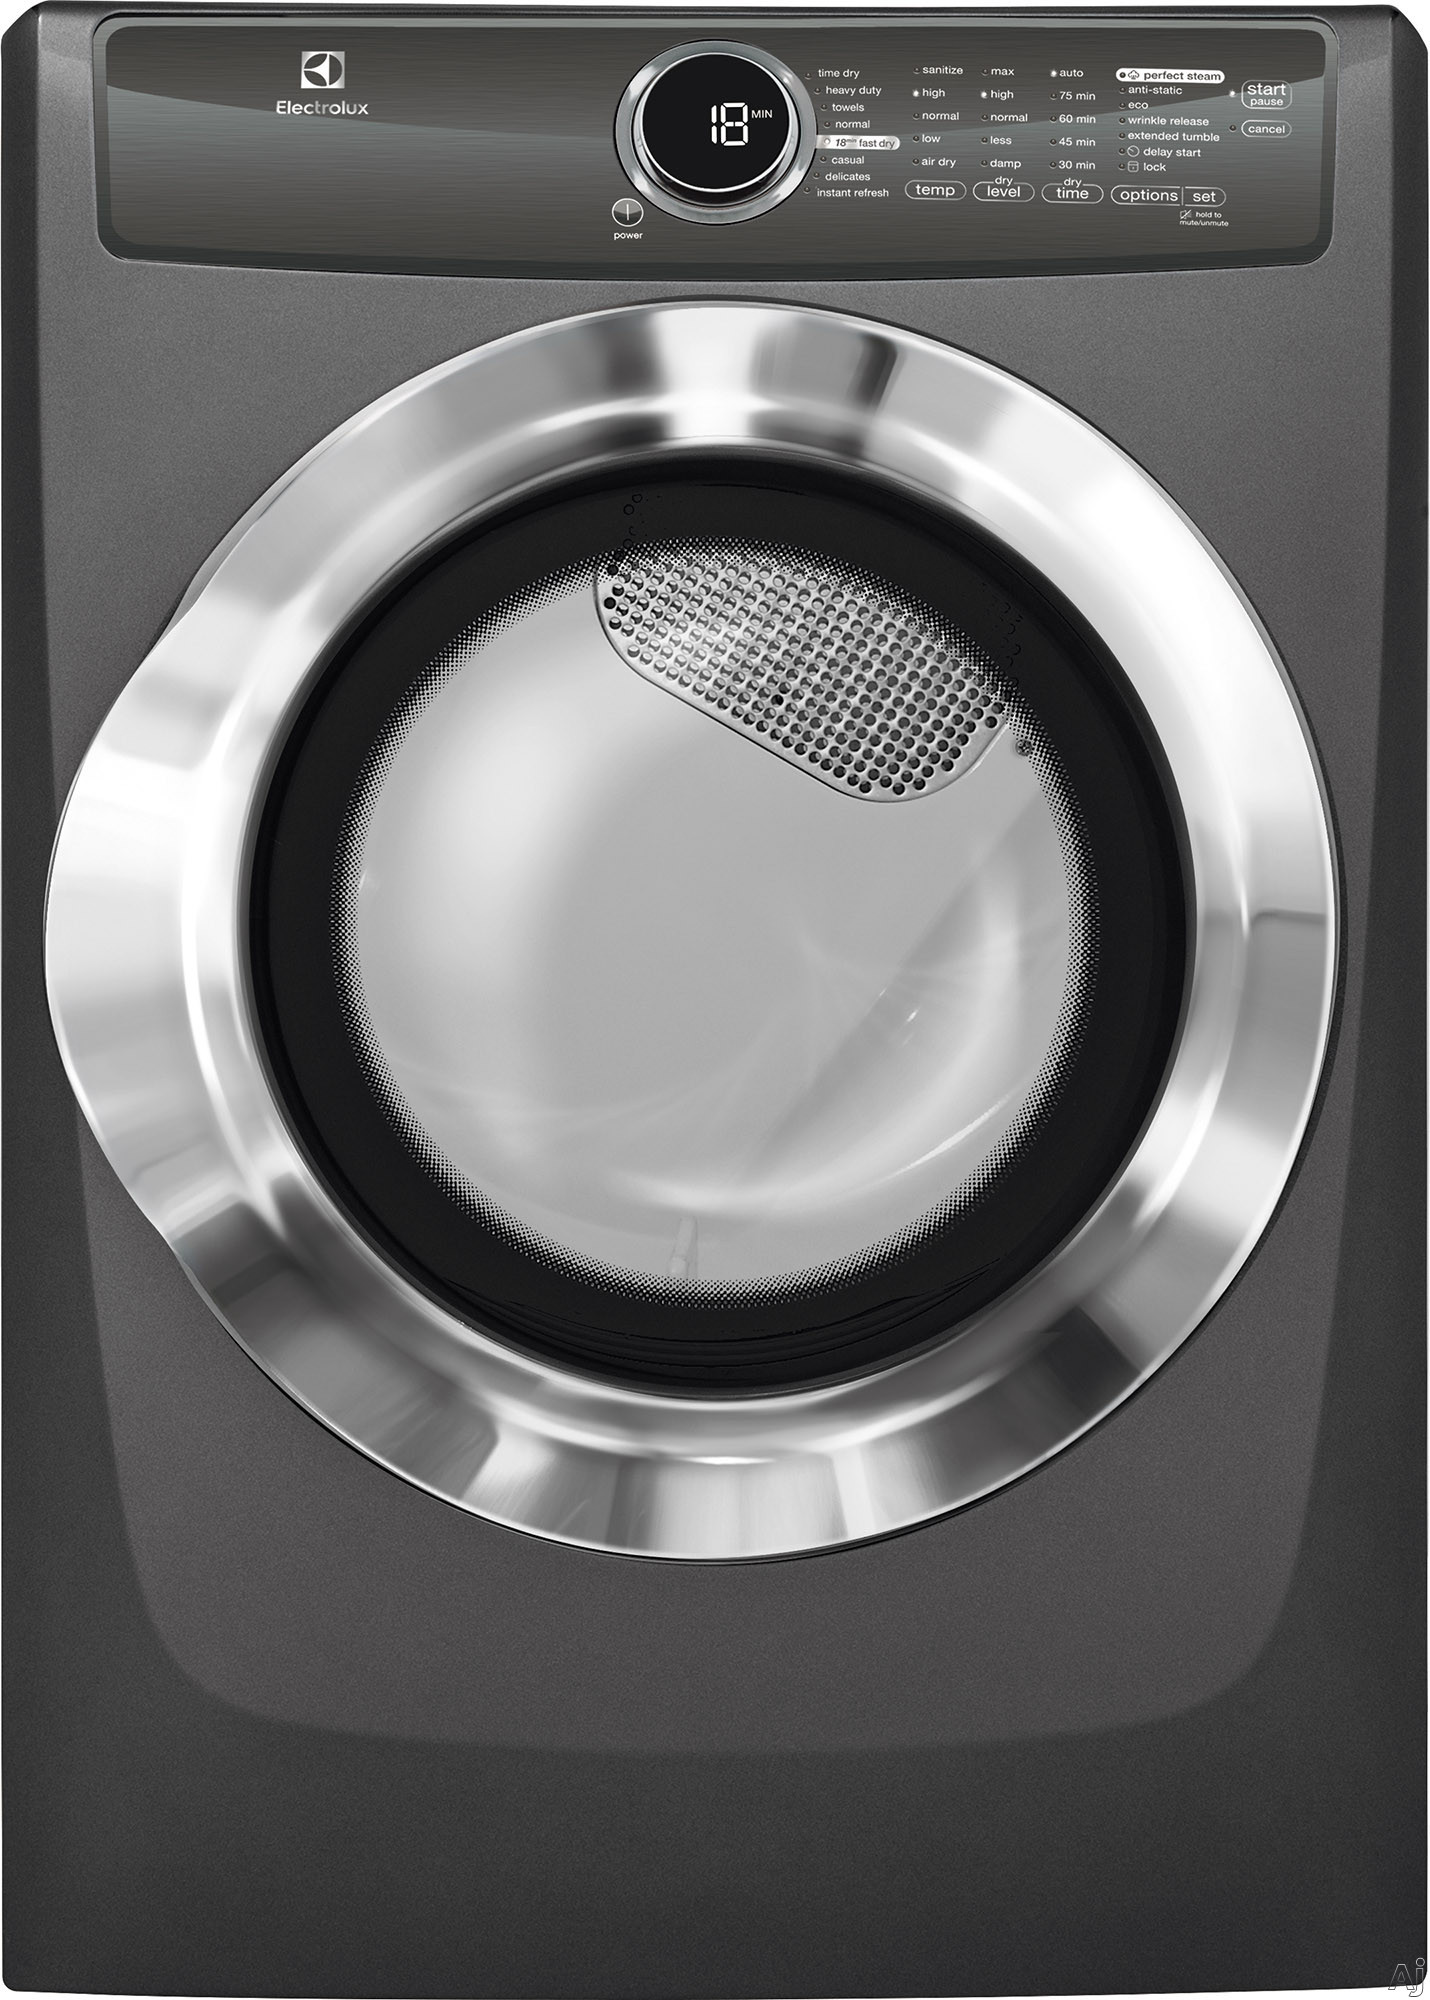 Electrolux EFMG517S 27 Inch 8.0 cu. ft. Electric Dryer with Moisture Sensor, Perfect Steam™, Instant Refresh, 8 Dry Cycles, 18 Min Fast Dry, Extended Tumble, Luxury-Quiet Sound System and ENERGY STAR®